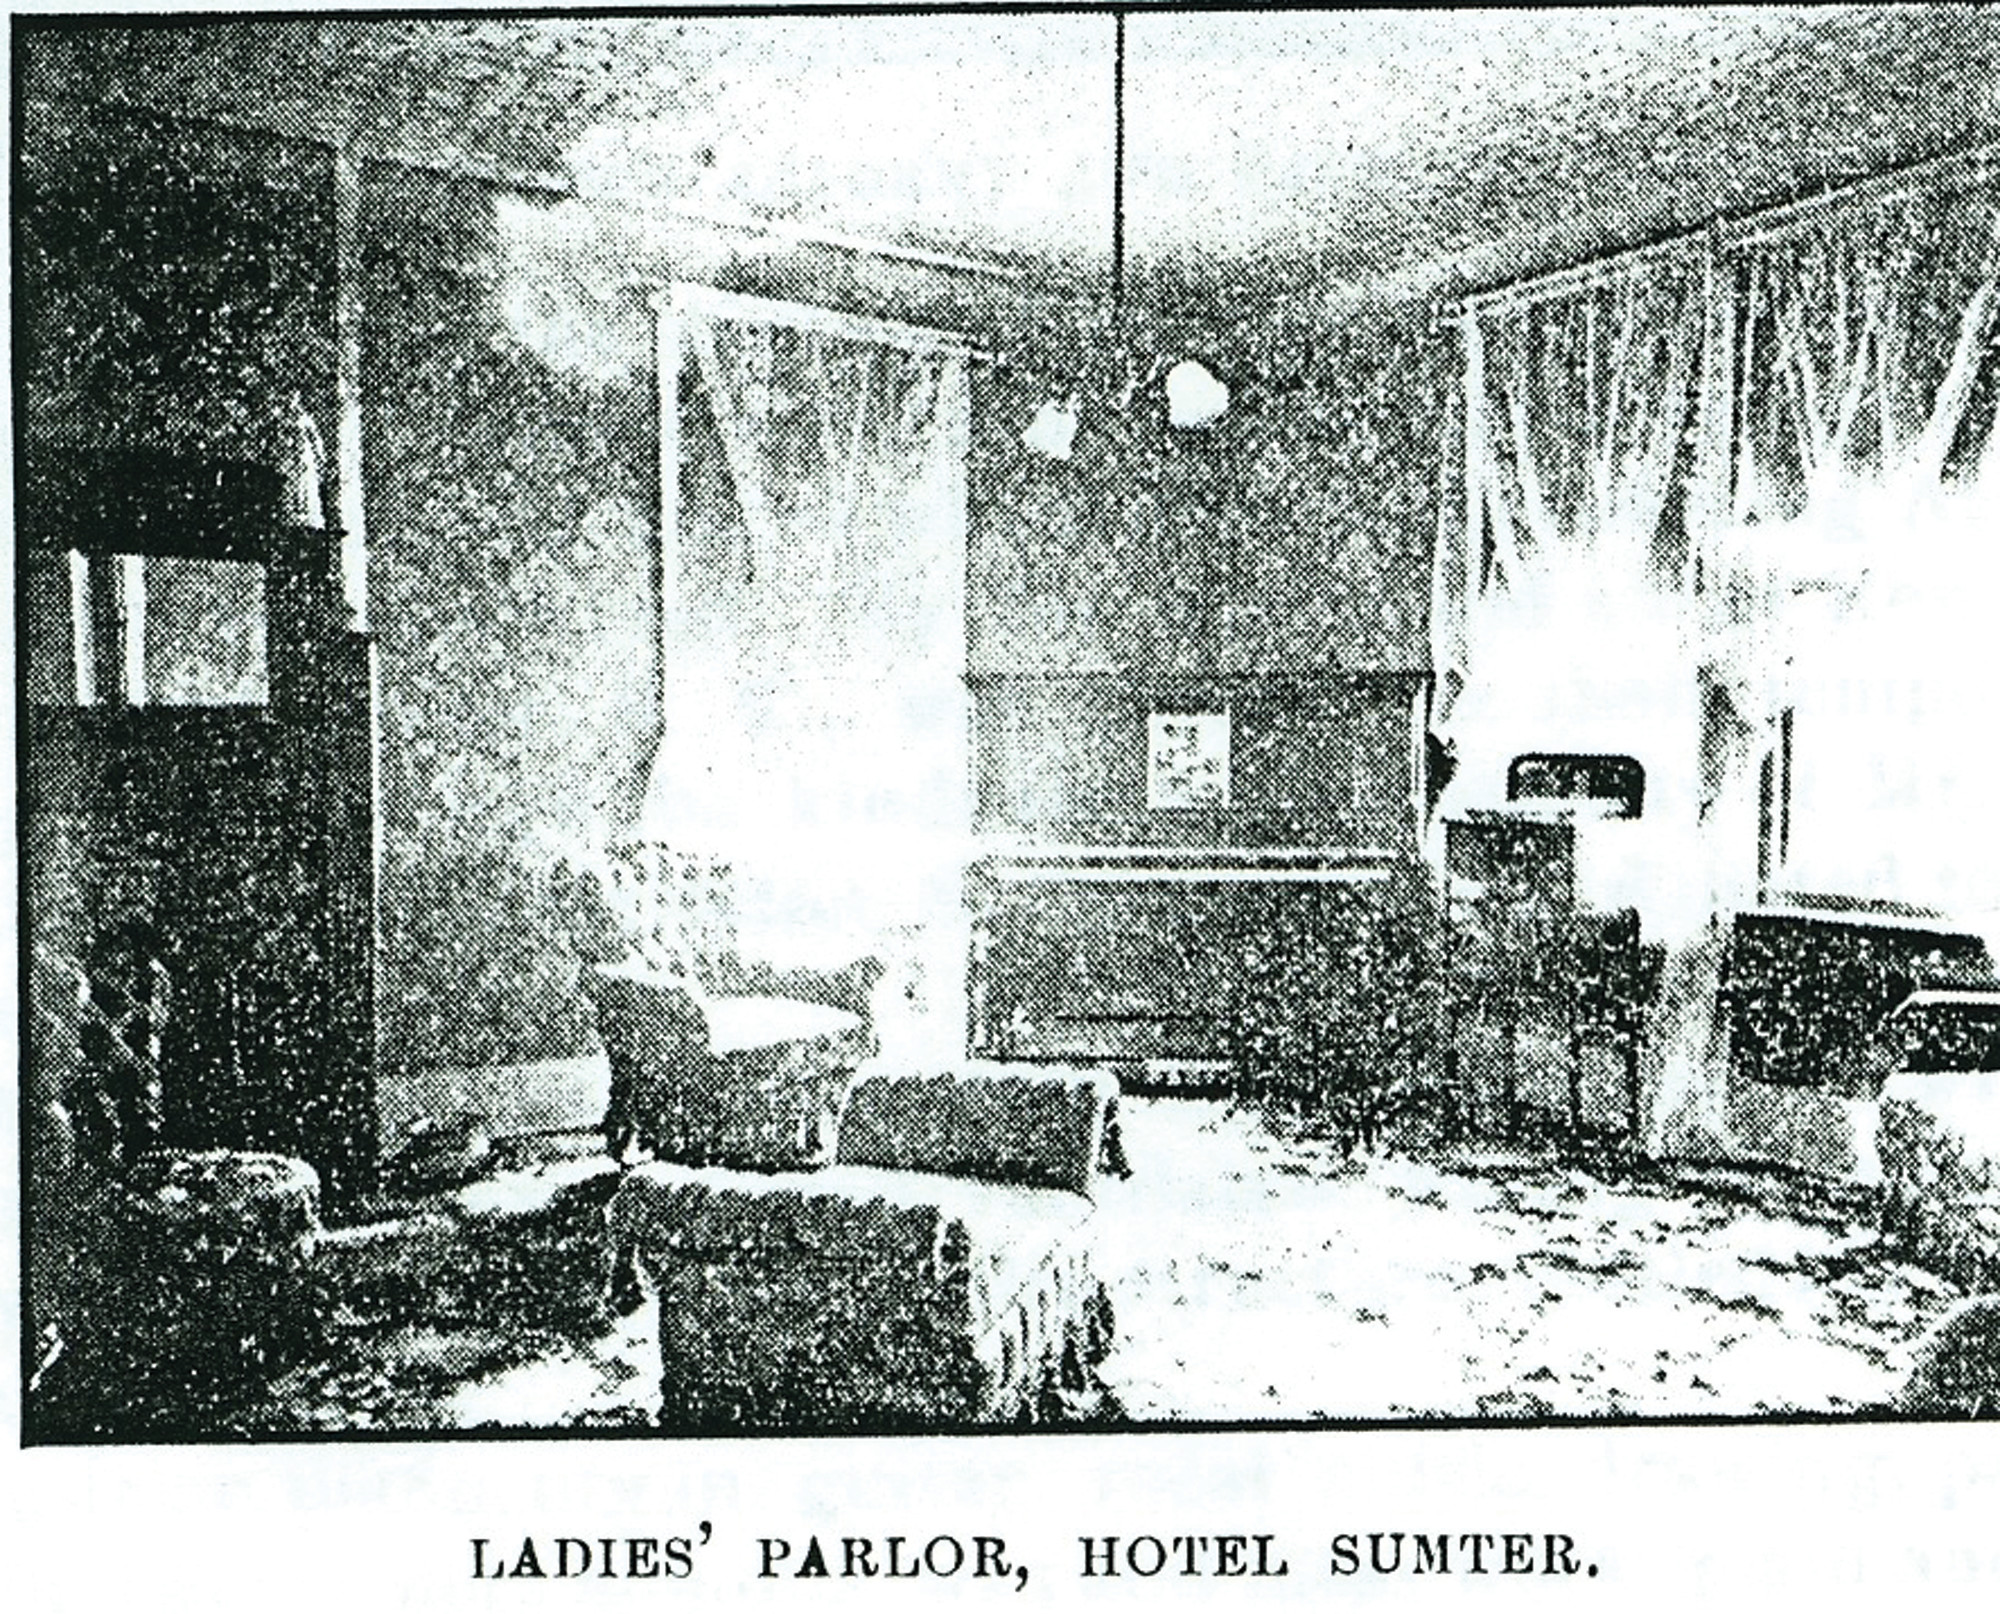 The ladies' parlor at the Hotel Sumter featured an upright piano.